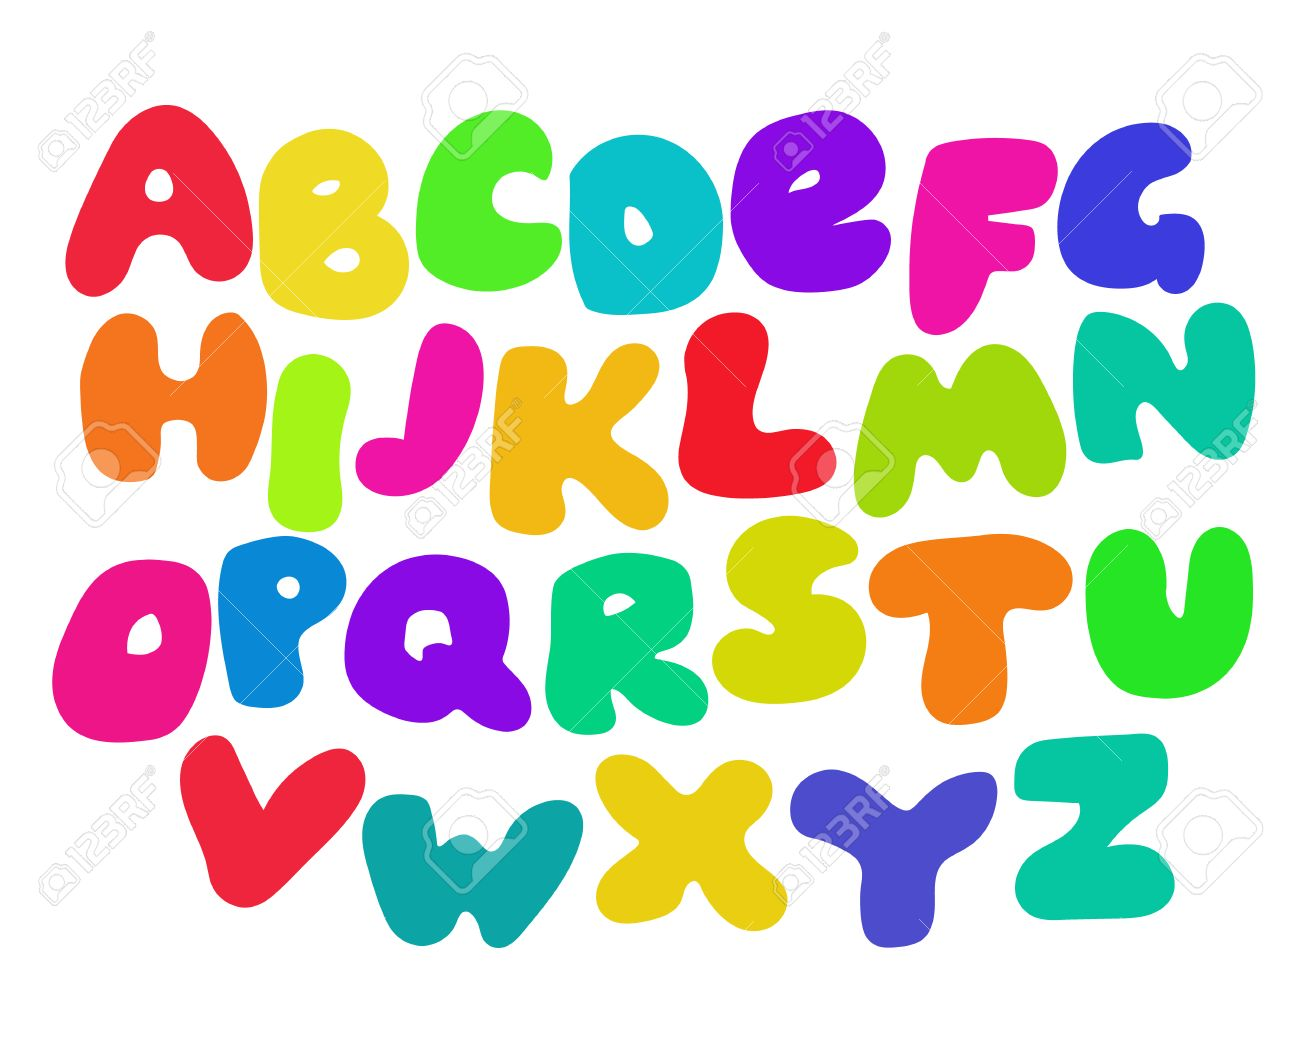 Funny Colorful Alphabet Poster For Children Cute Cartoon Alphabetic Letters In Vibrant Rainbow Colors